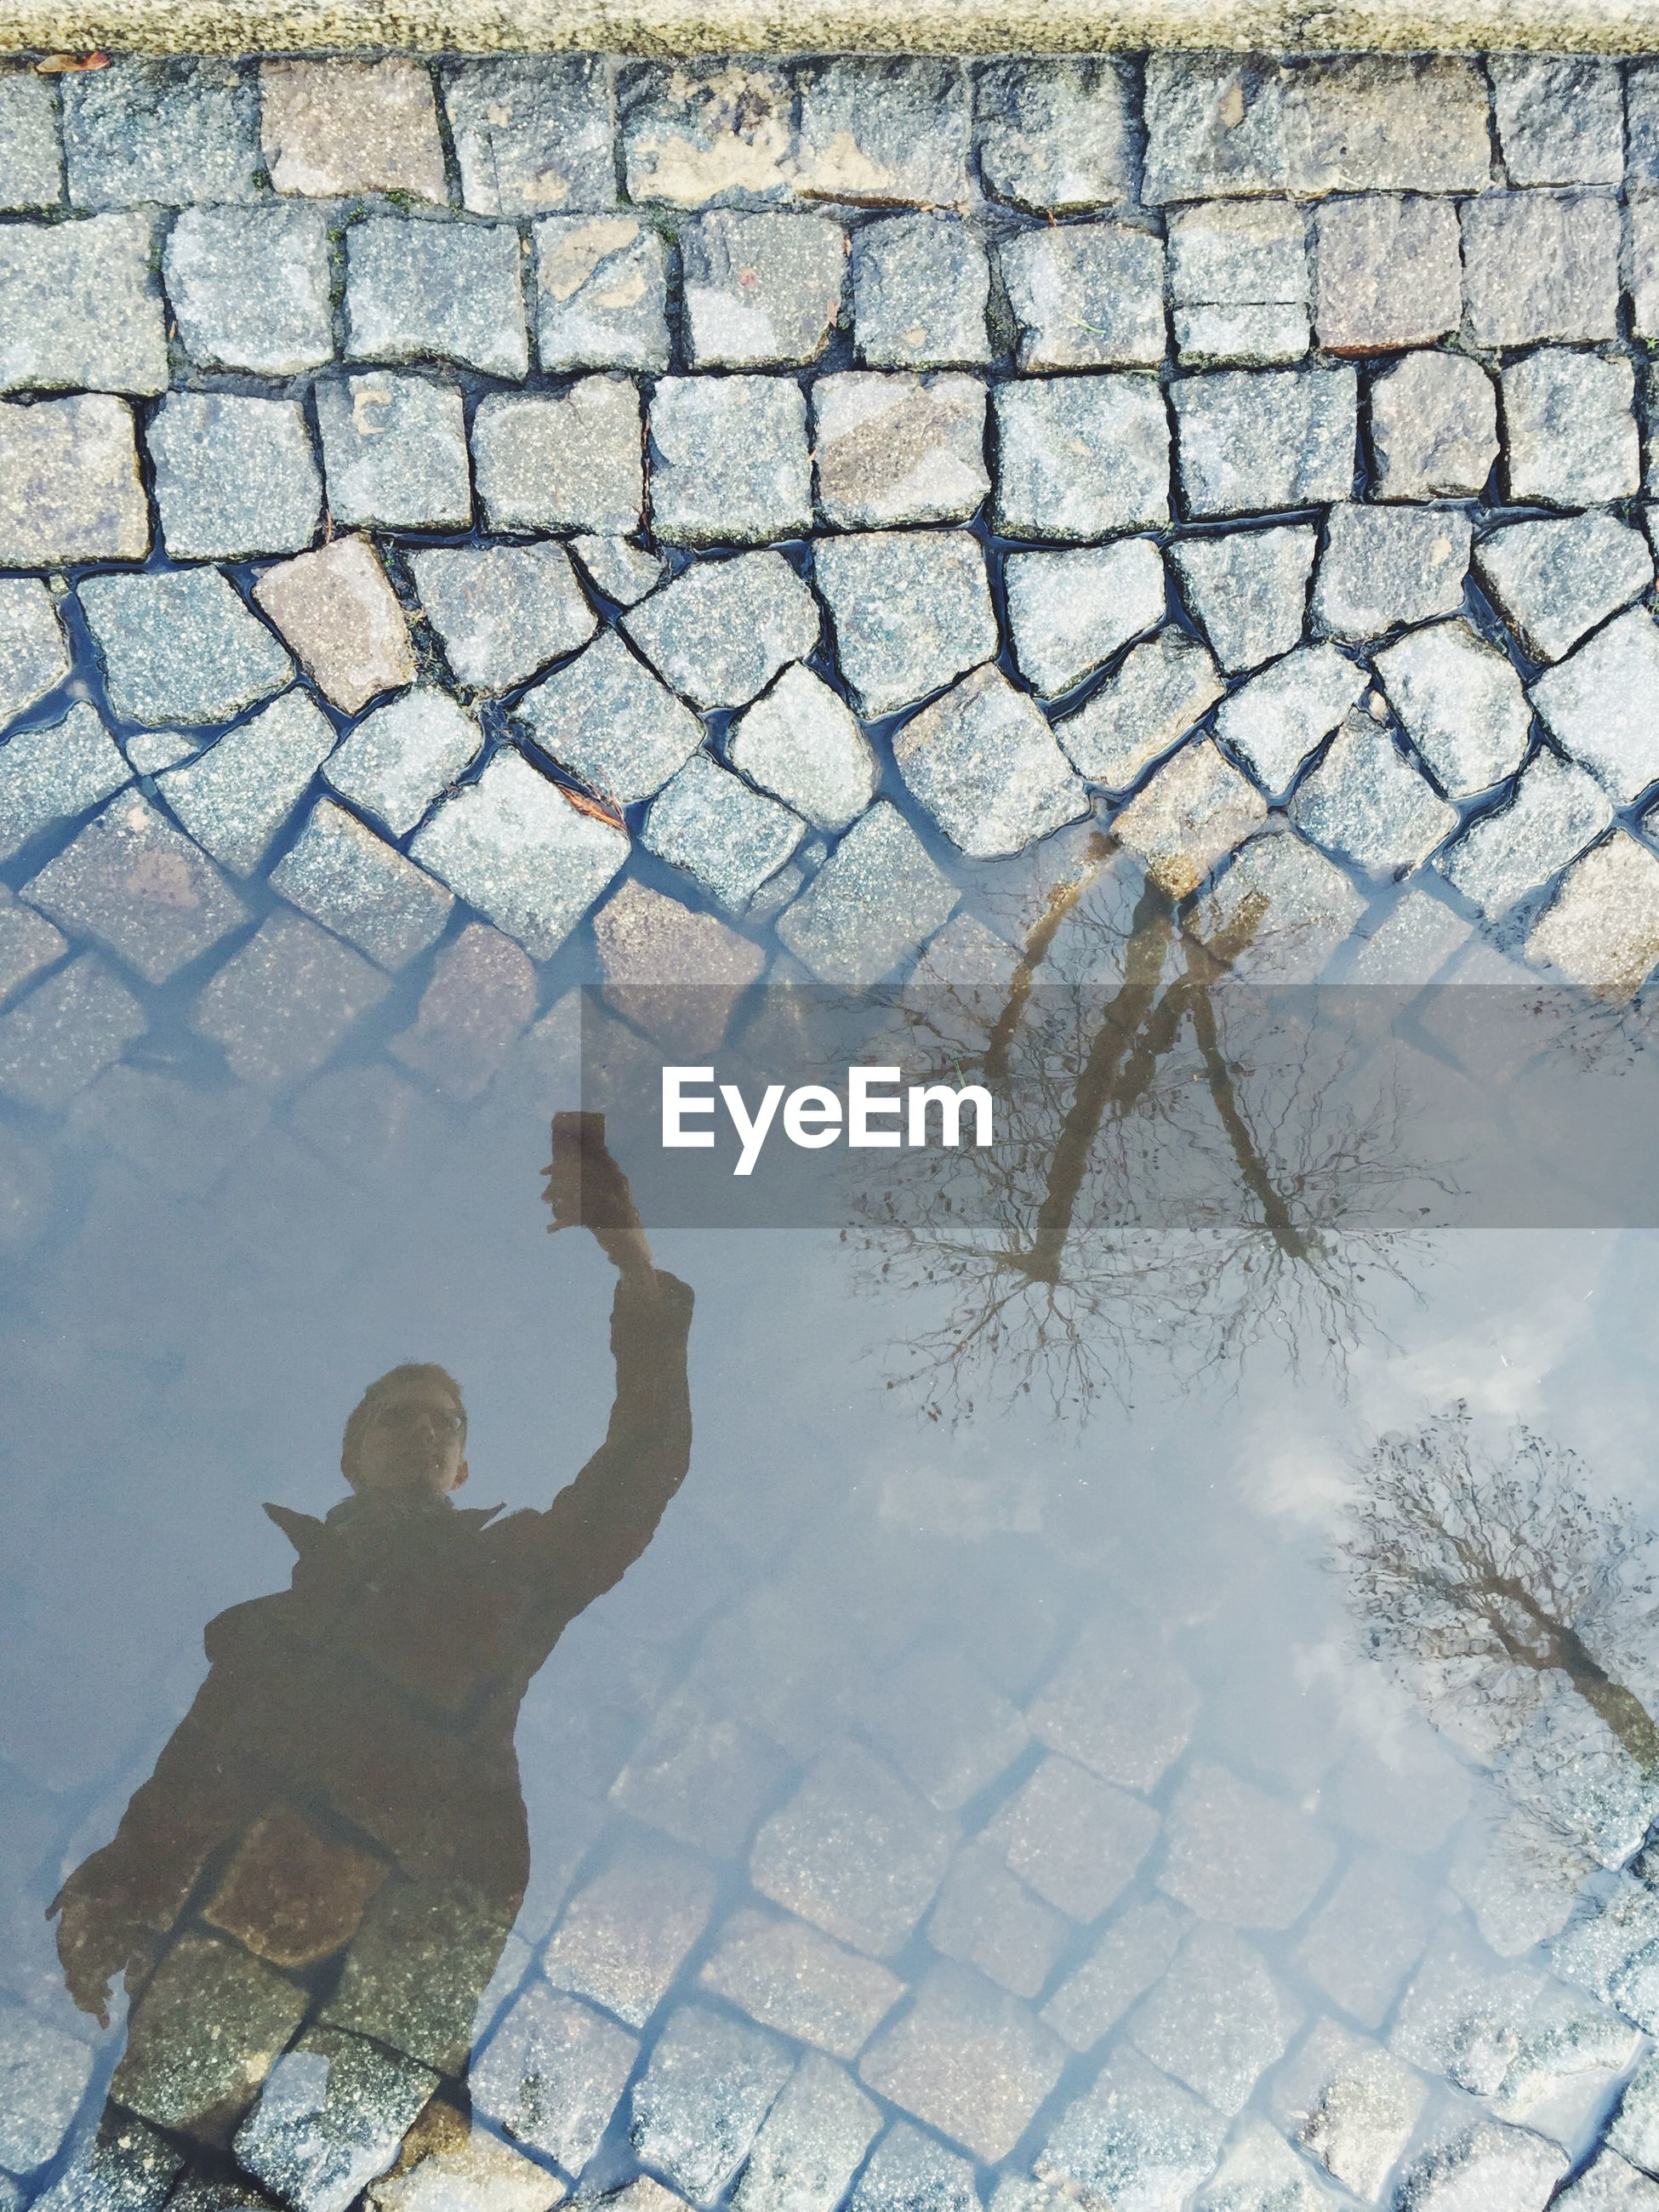 Reflection of man taking selfie in puddle